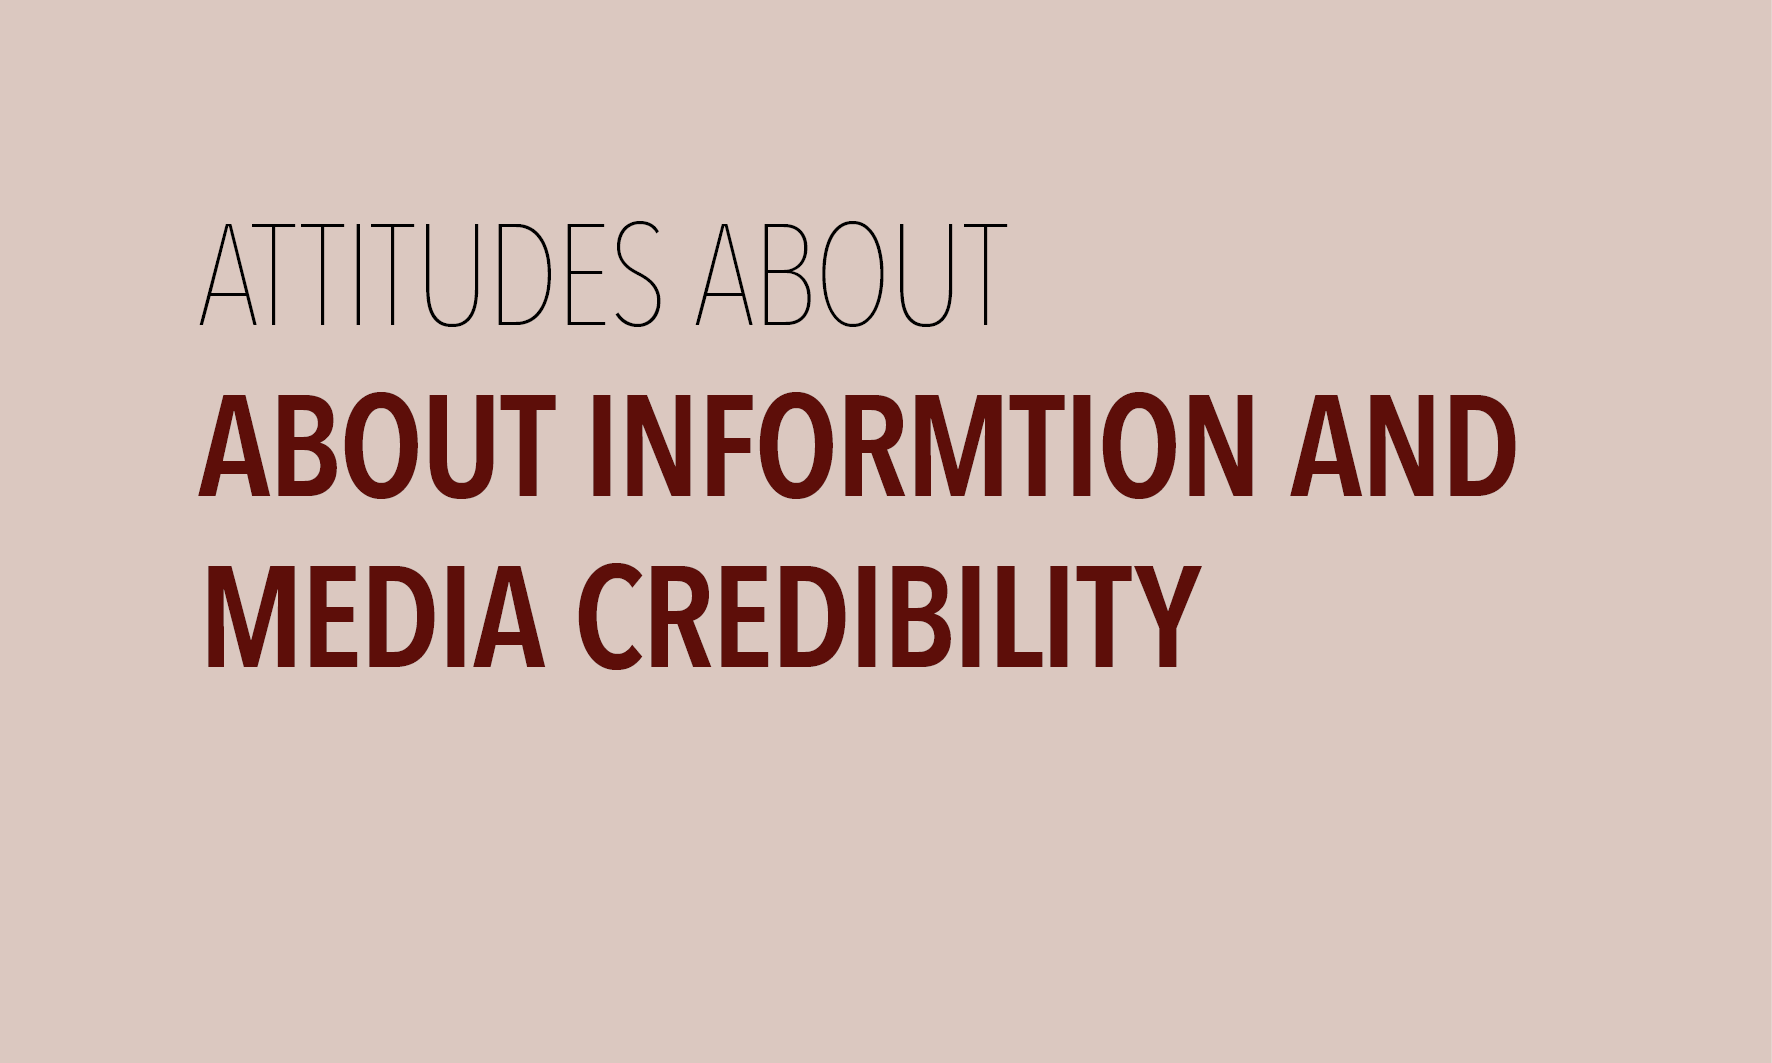 Media and Information credibility